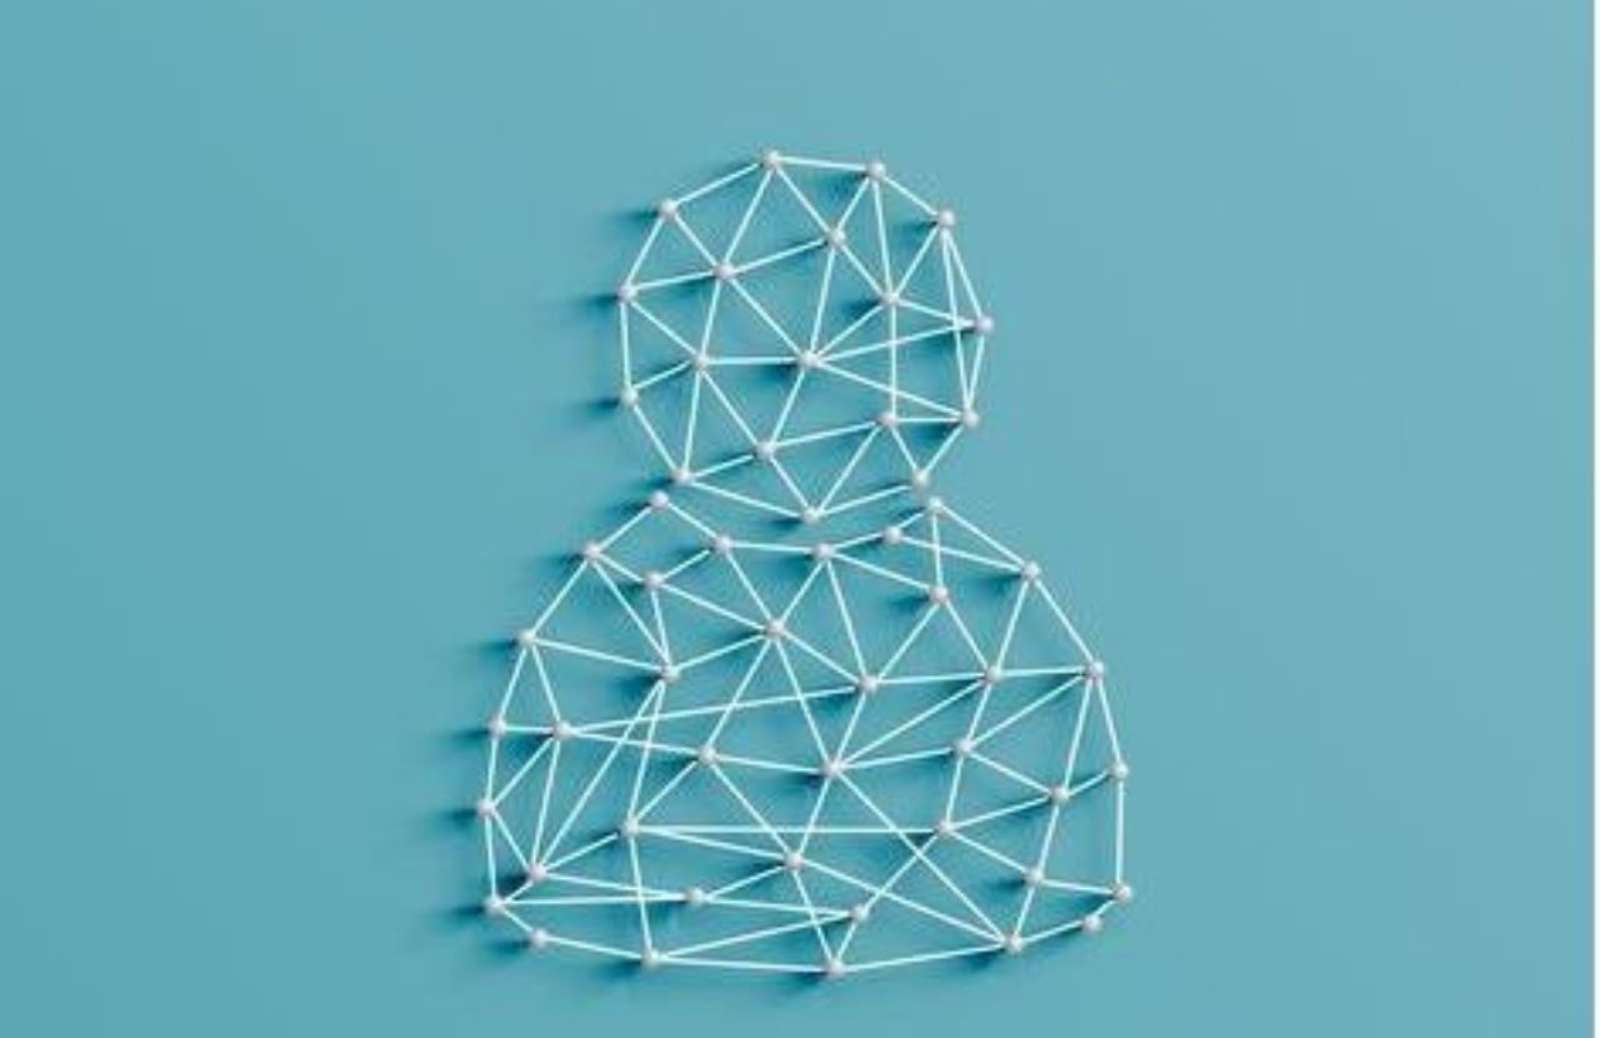 String art of head and shoulders against a blue background